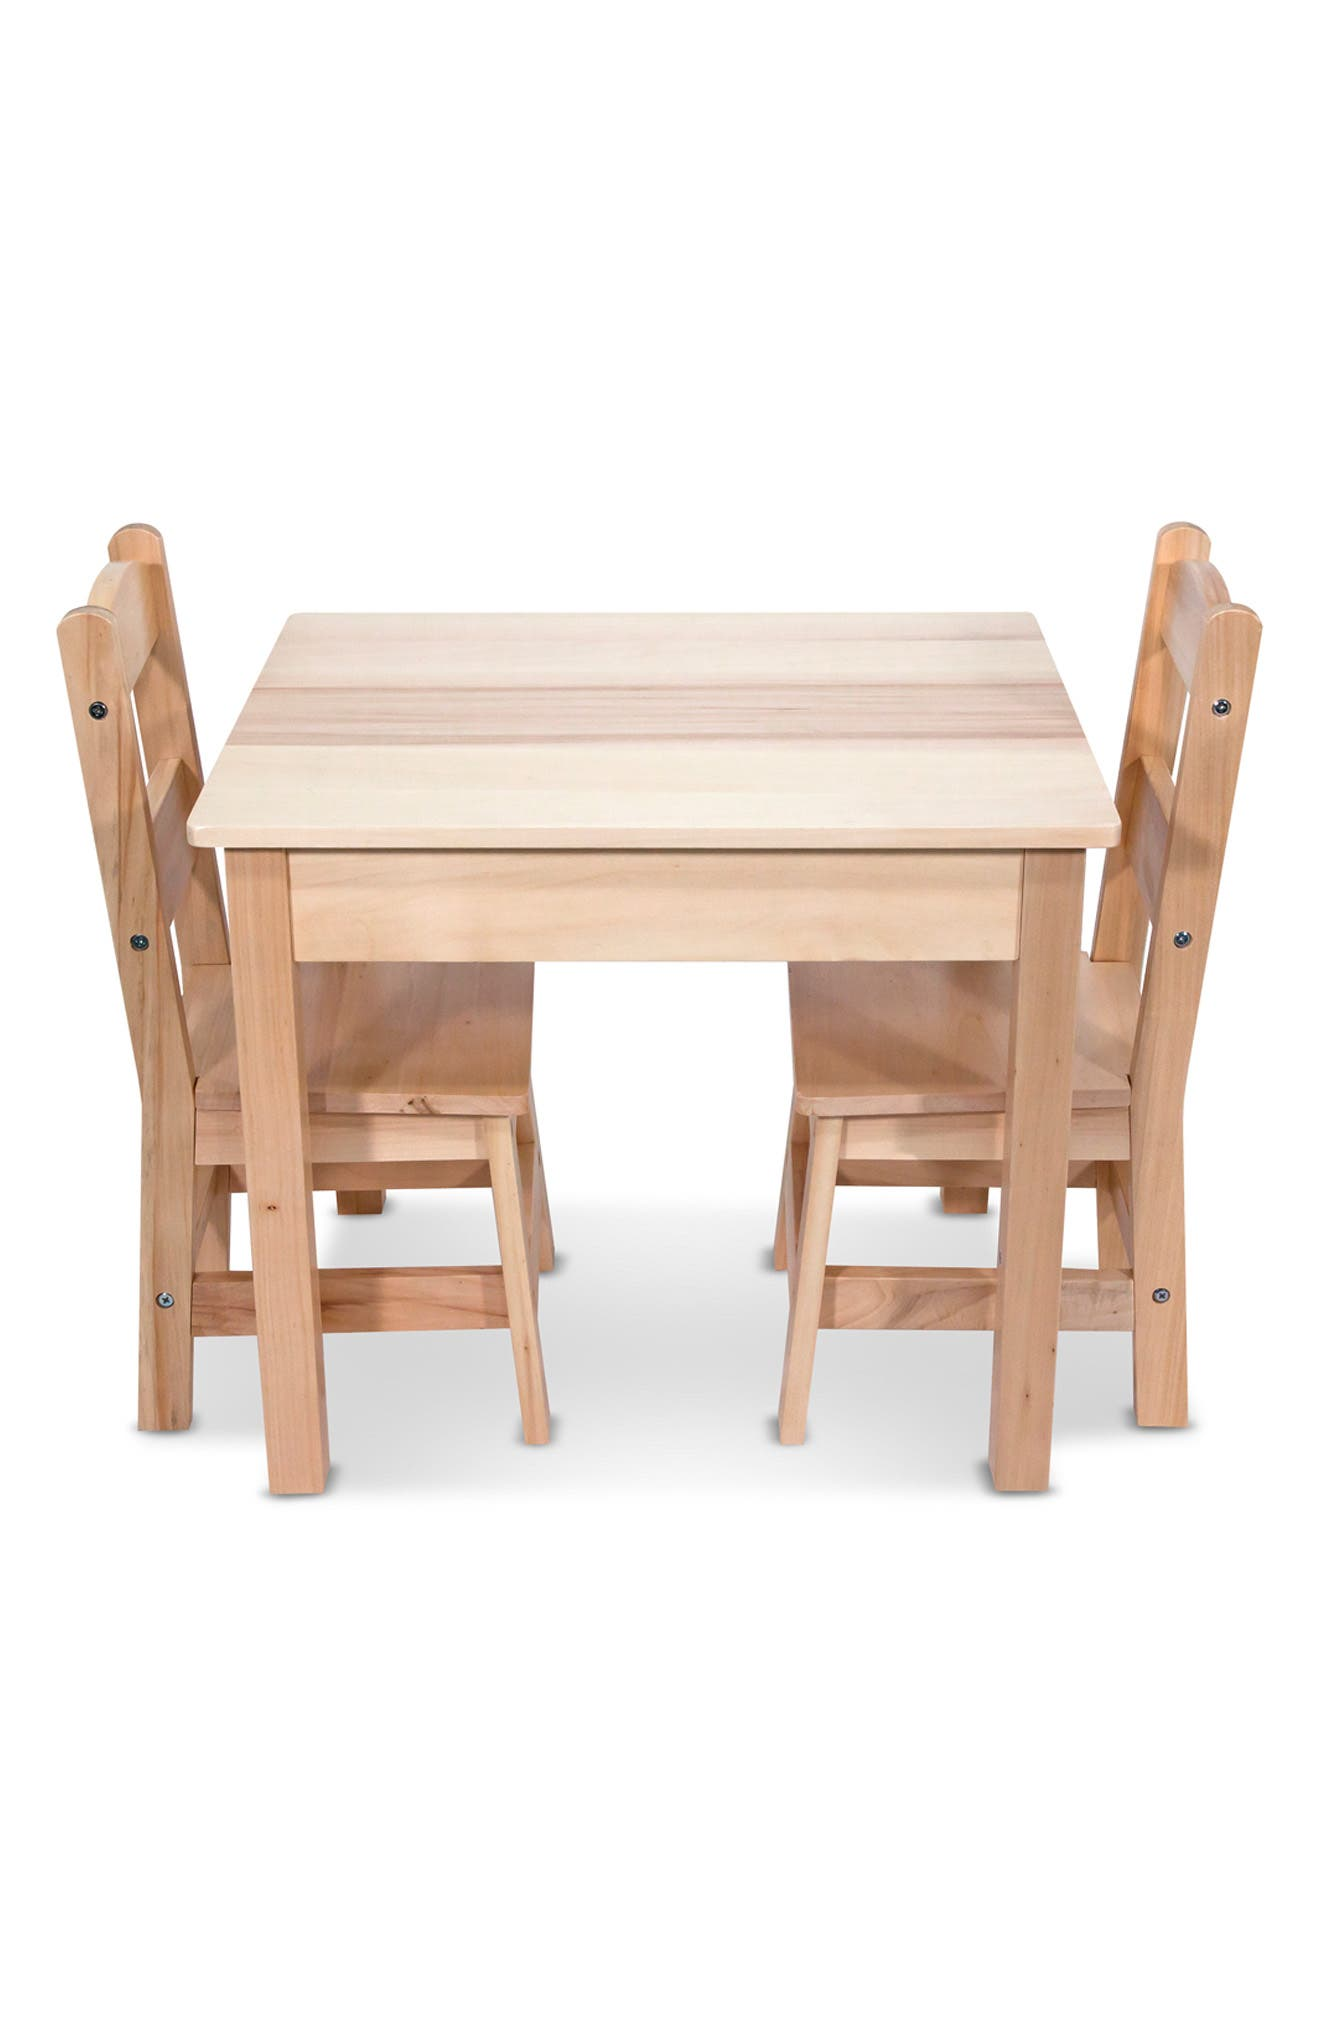 Wooden Table and Chairs Set,                             Alternate thumbnail 3, color,                             200